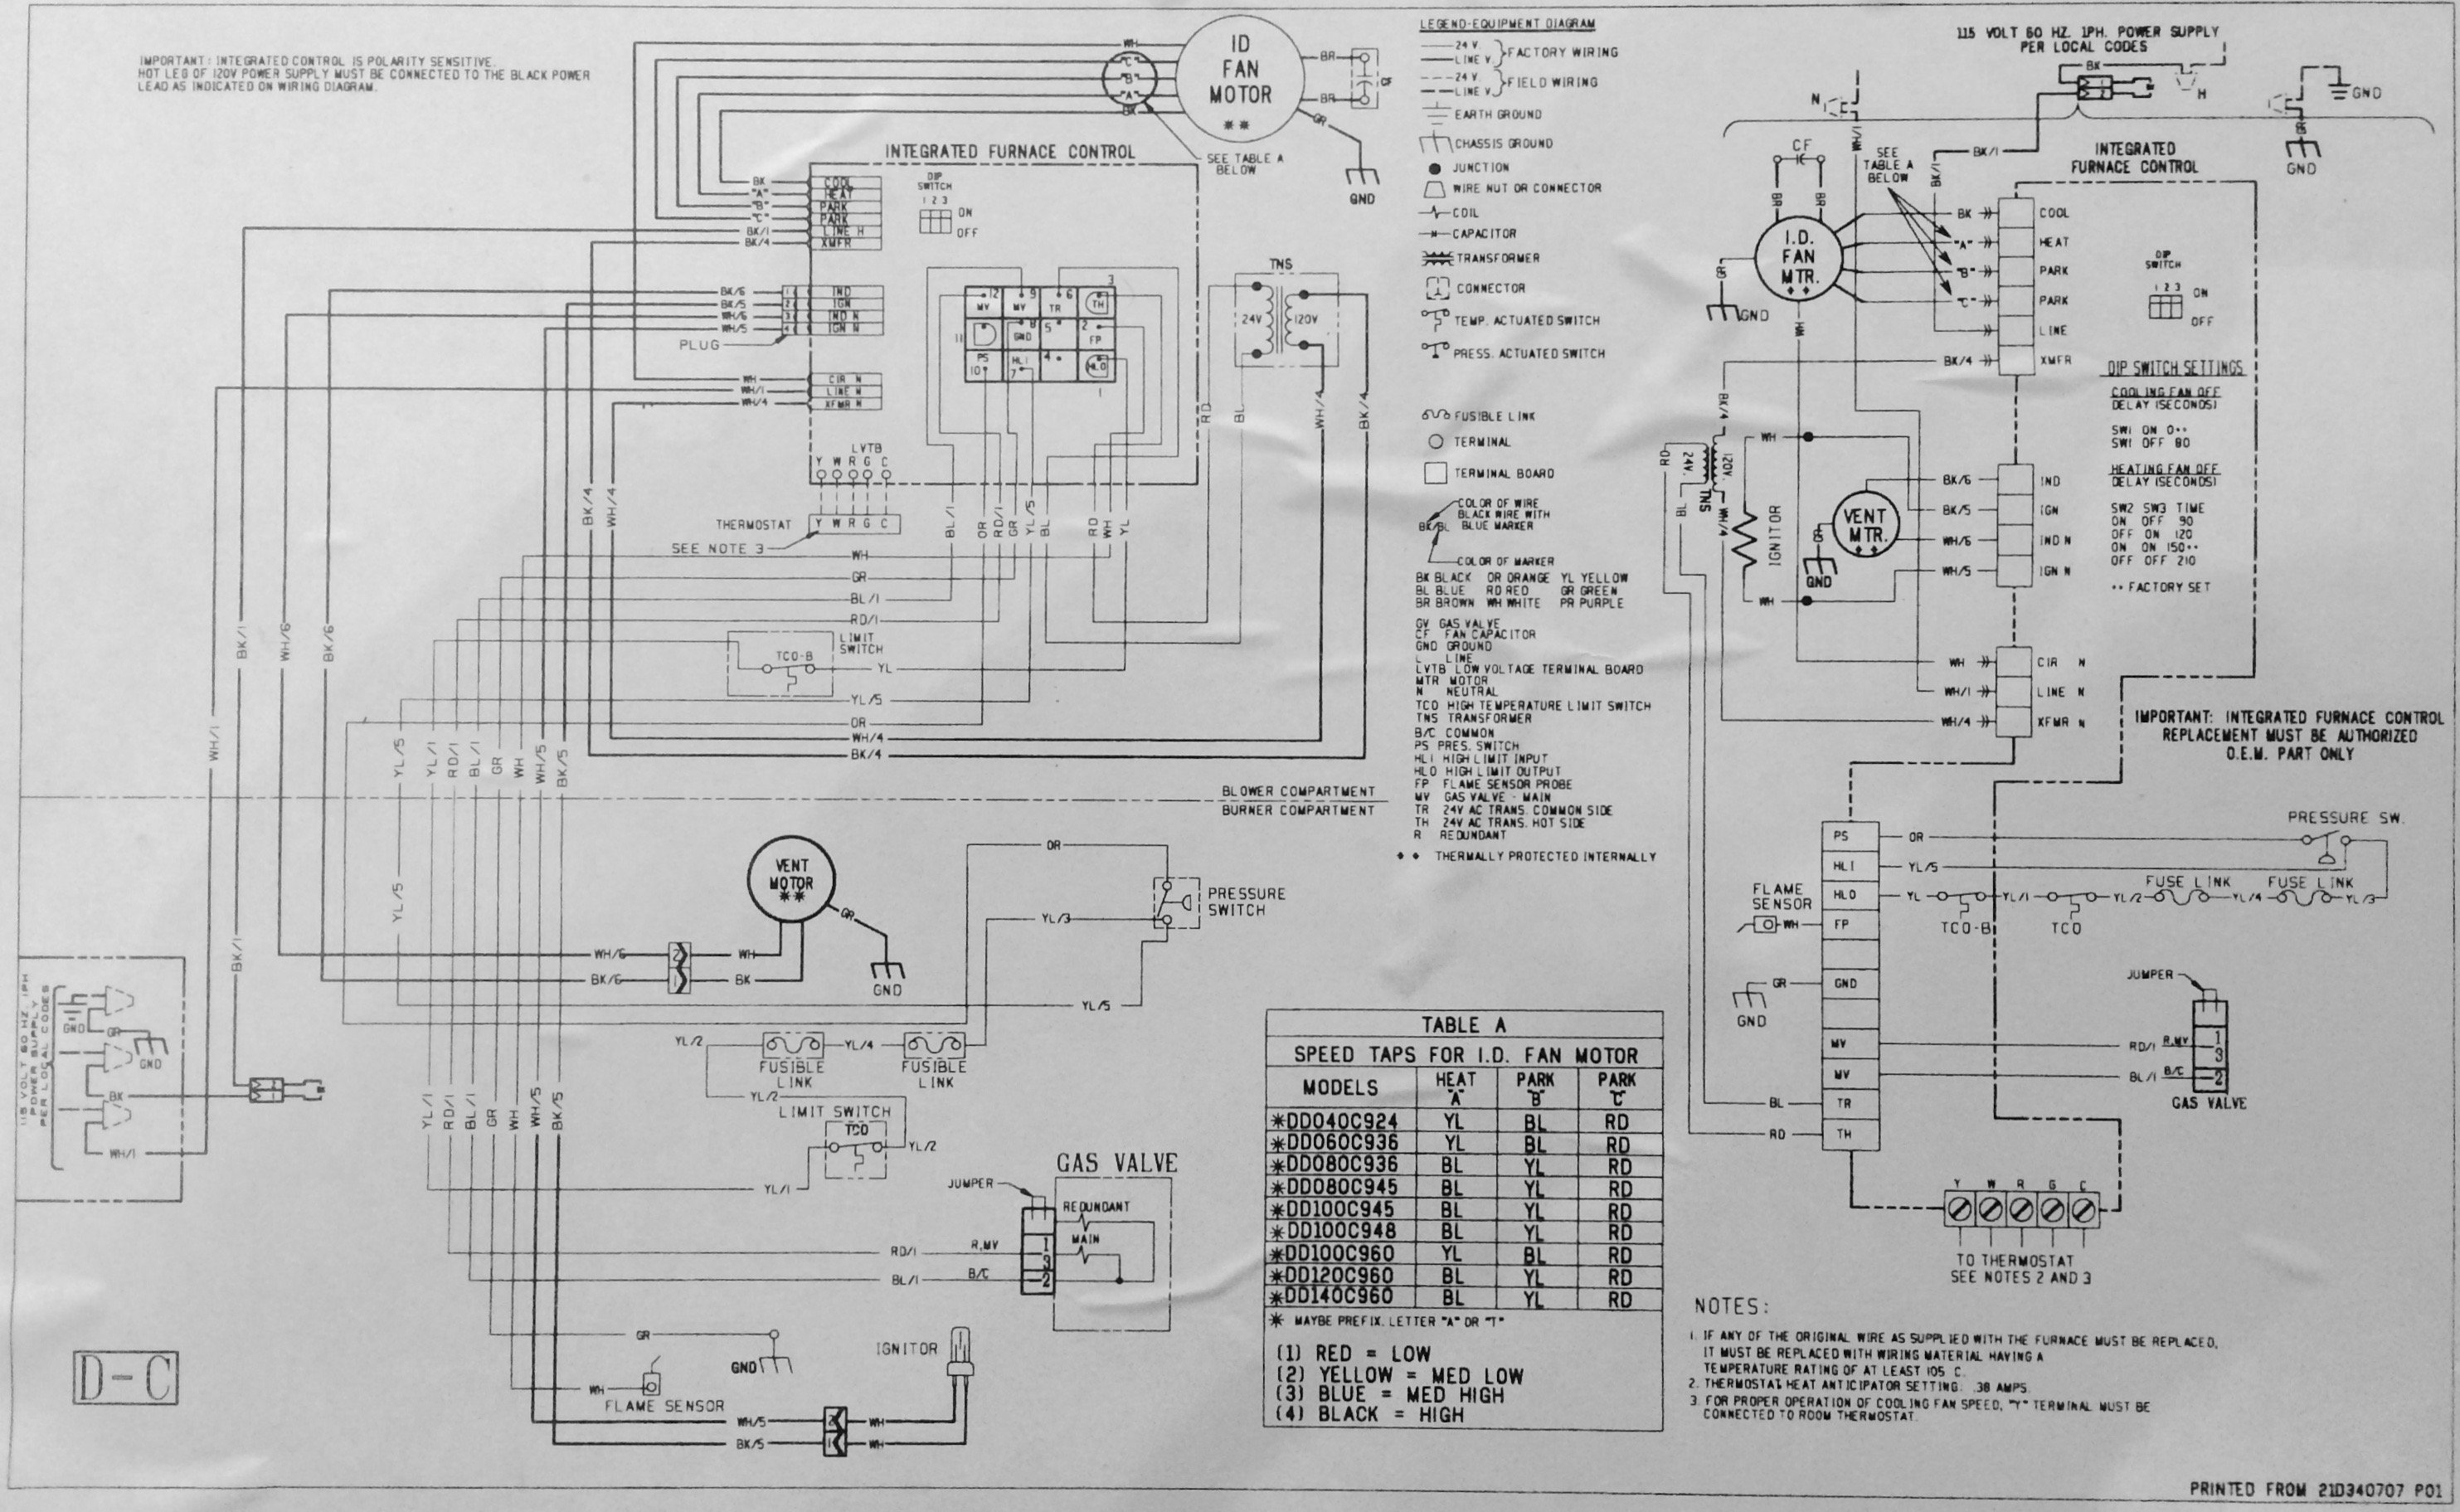 Trane Xe80 Wiring Diagram Library. Of Trane Xe 80 Wiring Diagram From Inside Furnace Faceplatecover Img0346. Wiring. Wire Diagram Pioneer Premier Deh P480mp Product At Scoala.co